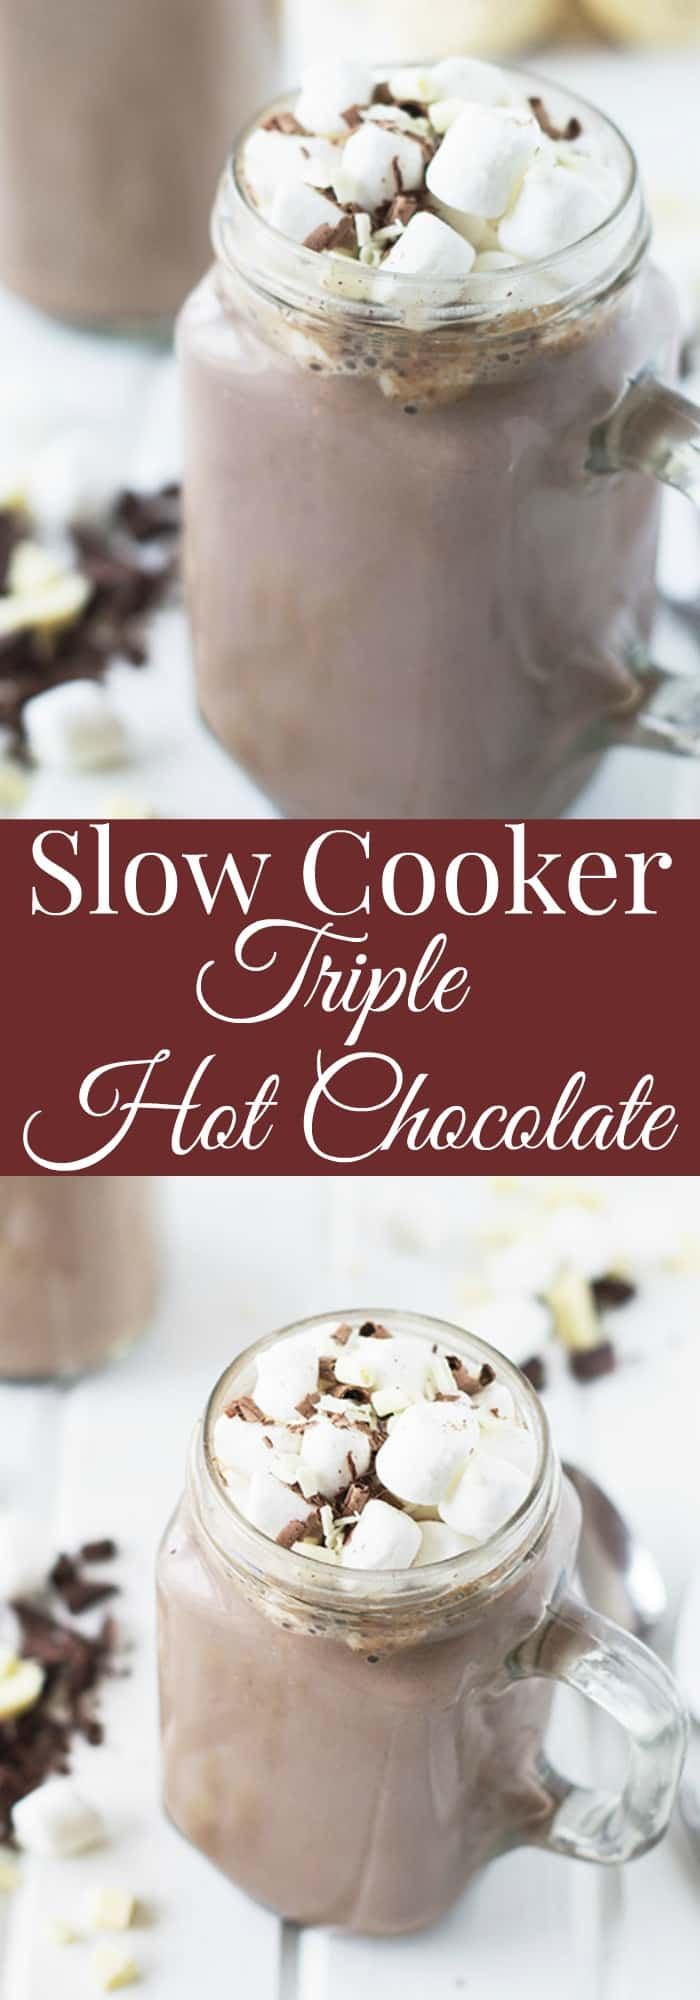 Slow Cooker Triple Hot Chocolate- easy and delicious hot chocolate made right in your slow cooker and with three kinds of chocolate! | countrysidecravings.com